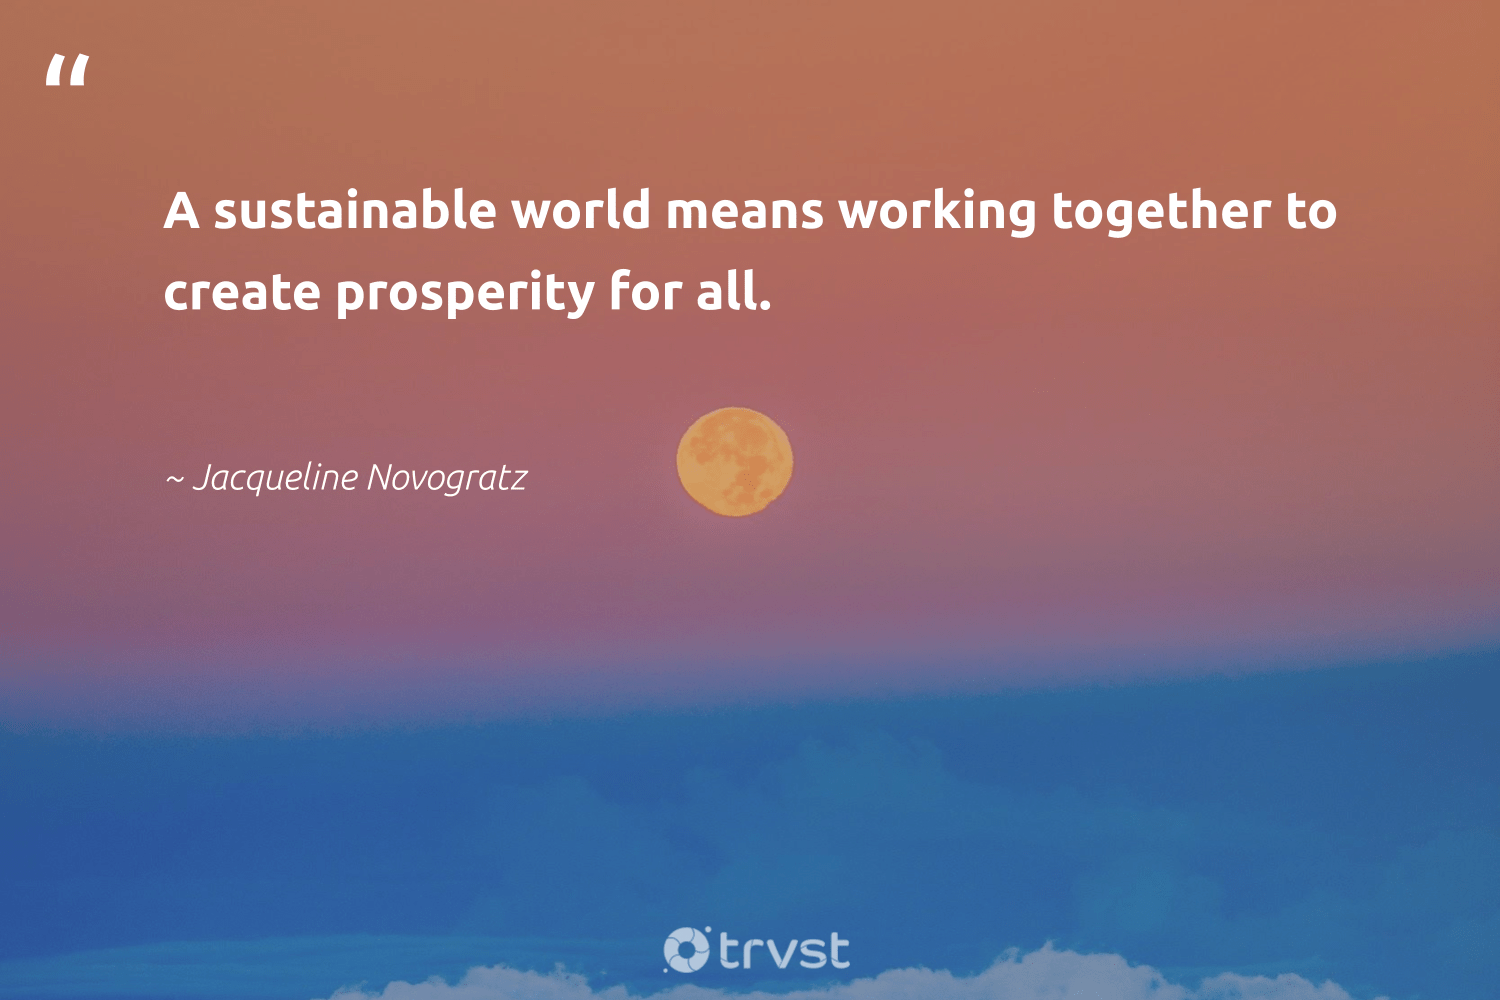 """A sustainable world means working together to create prosperity for all.""  - Jacqueline Novogratz #trvst #quotes #sustainable #workingtogether #ecofriendly #softskills #bethechange #takeaction #sustainability #futureofwork #green #ecoconscious"